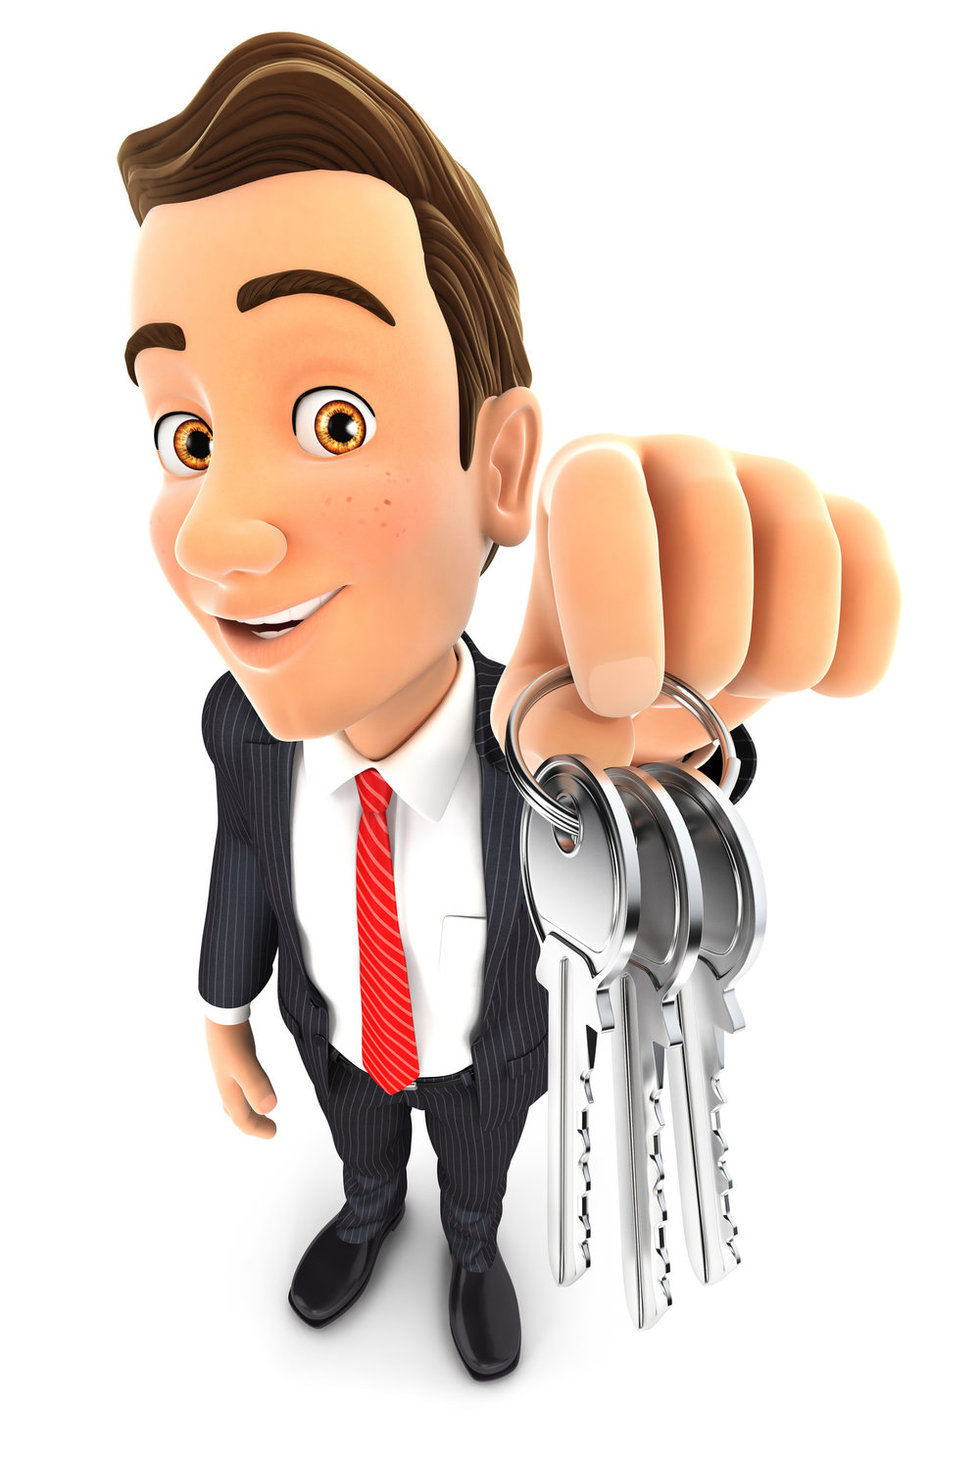 Handing over the keys after a home sale.